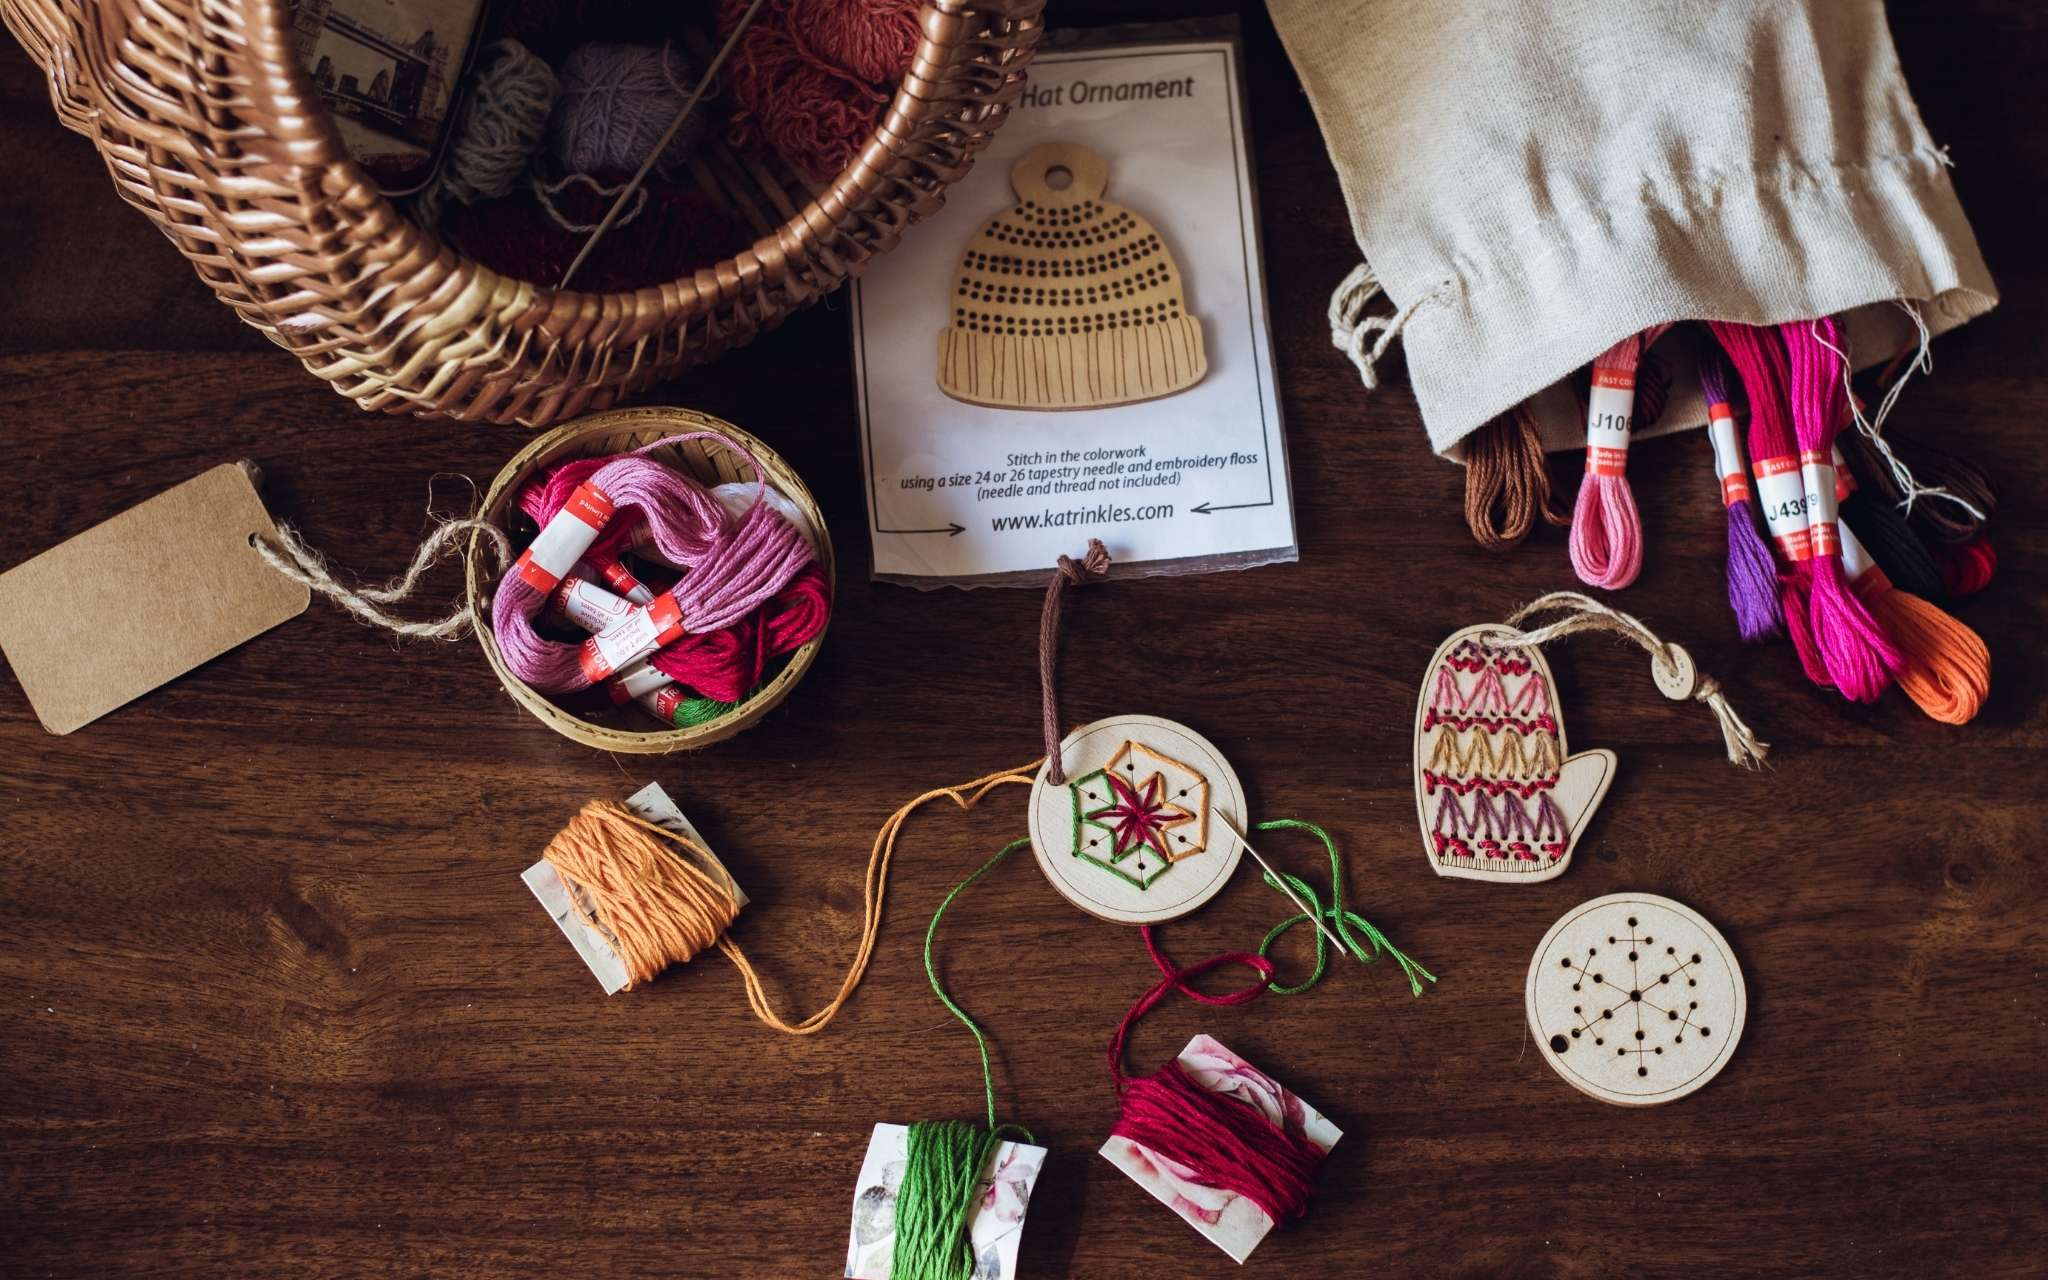 A selection of wooden hanging ornaments lie on a flat surface next to a wicker basket, and a pile of brightly coloured threads.